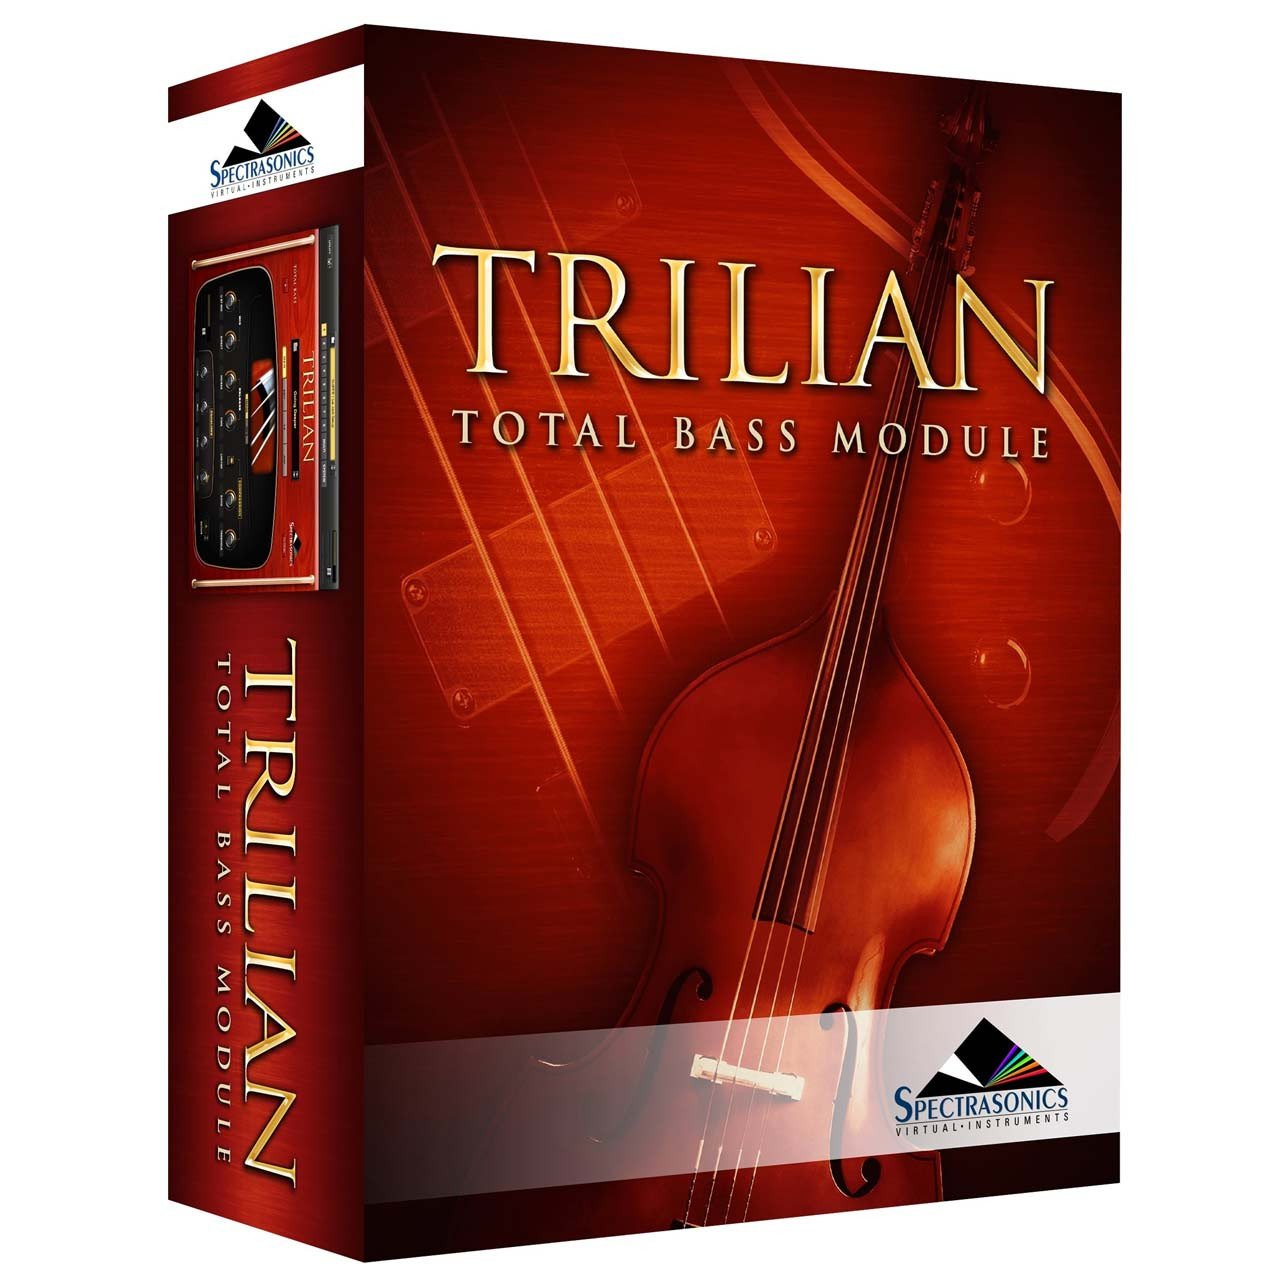 Spectrasonics Trilian Total Bass Module Software Instrument